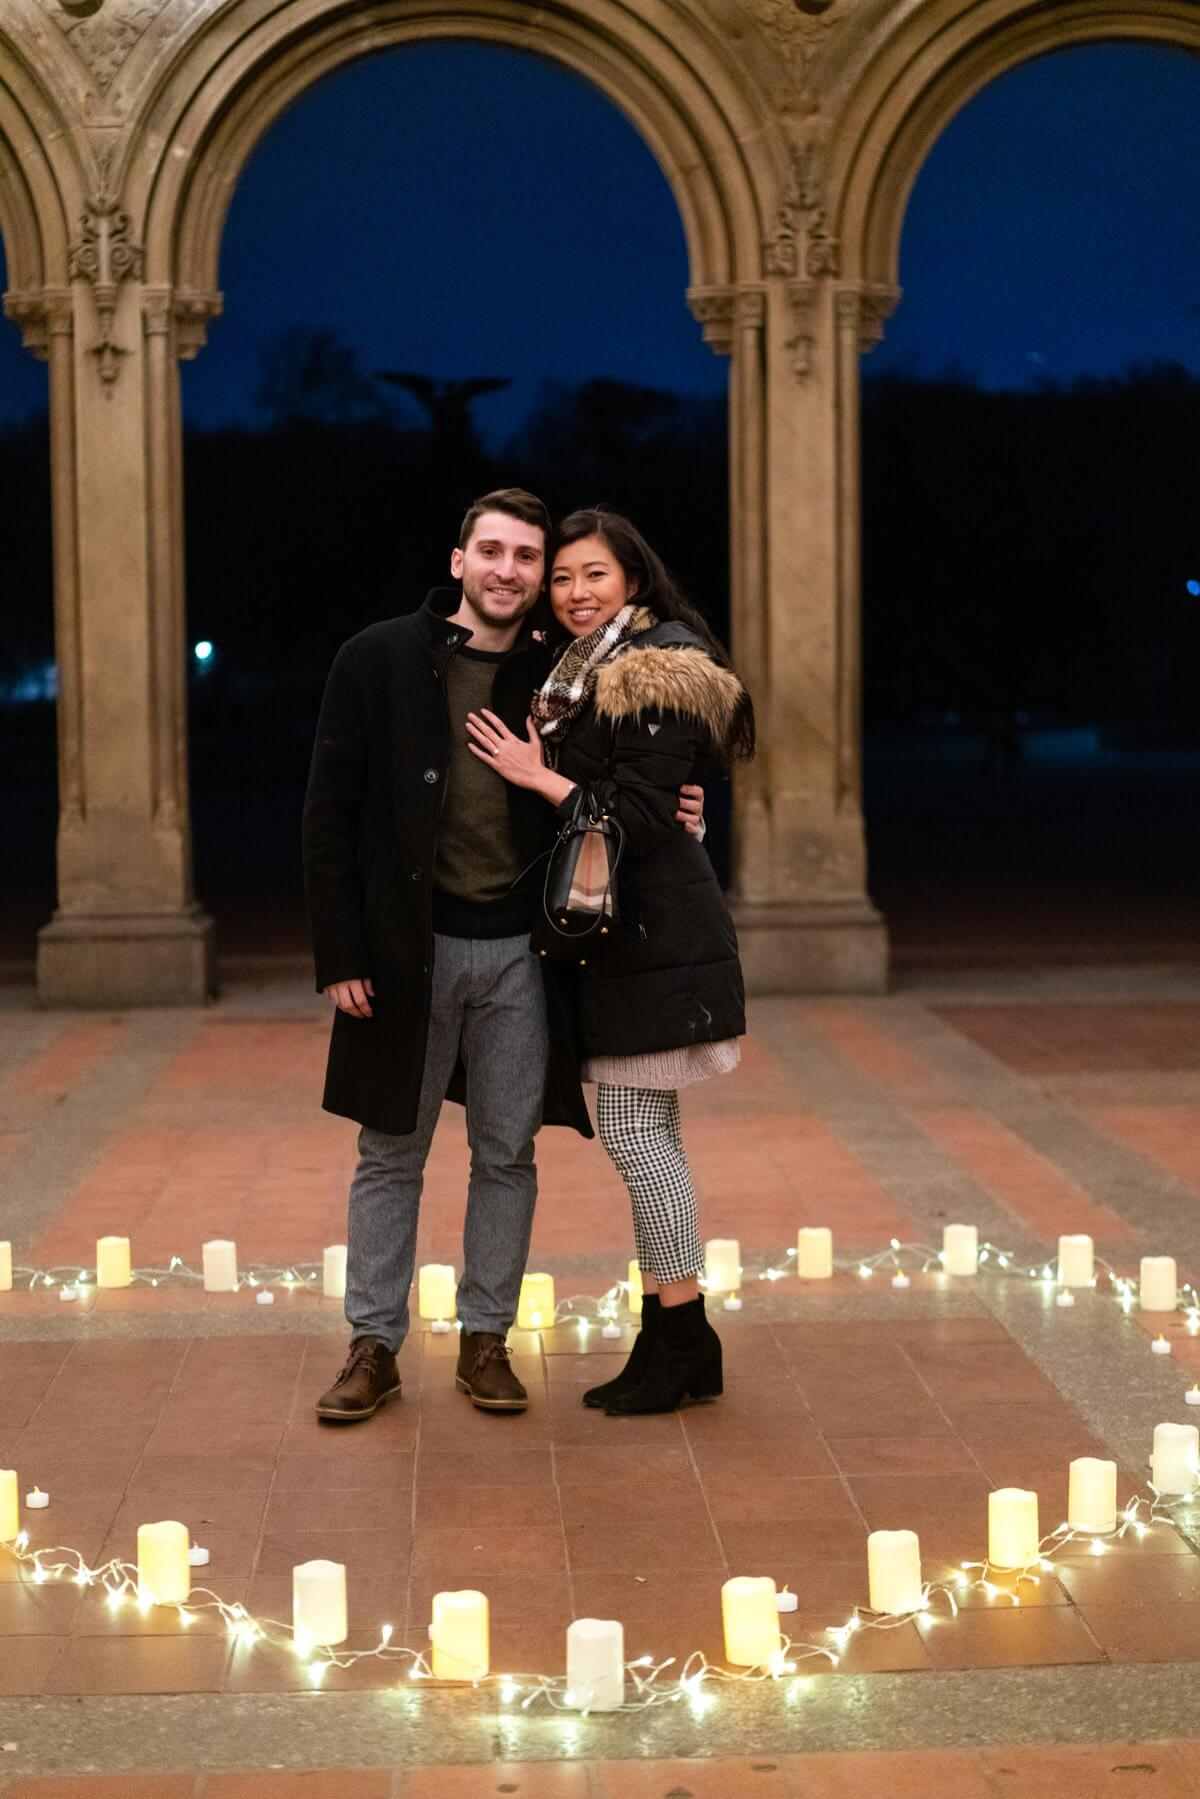 Photo 4 Marriage Proposal at Bethesda Terrace in Central Park. | VladLeto